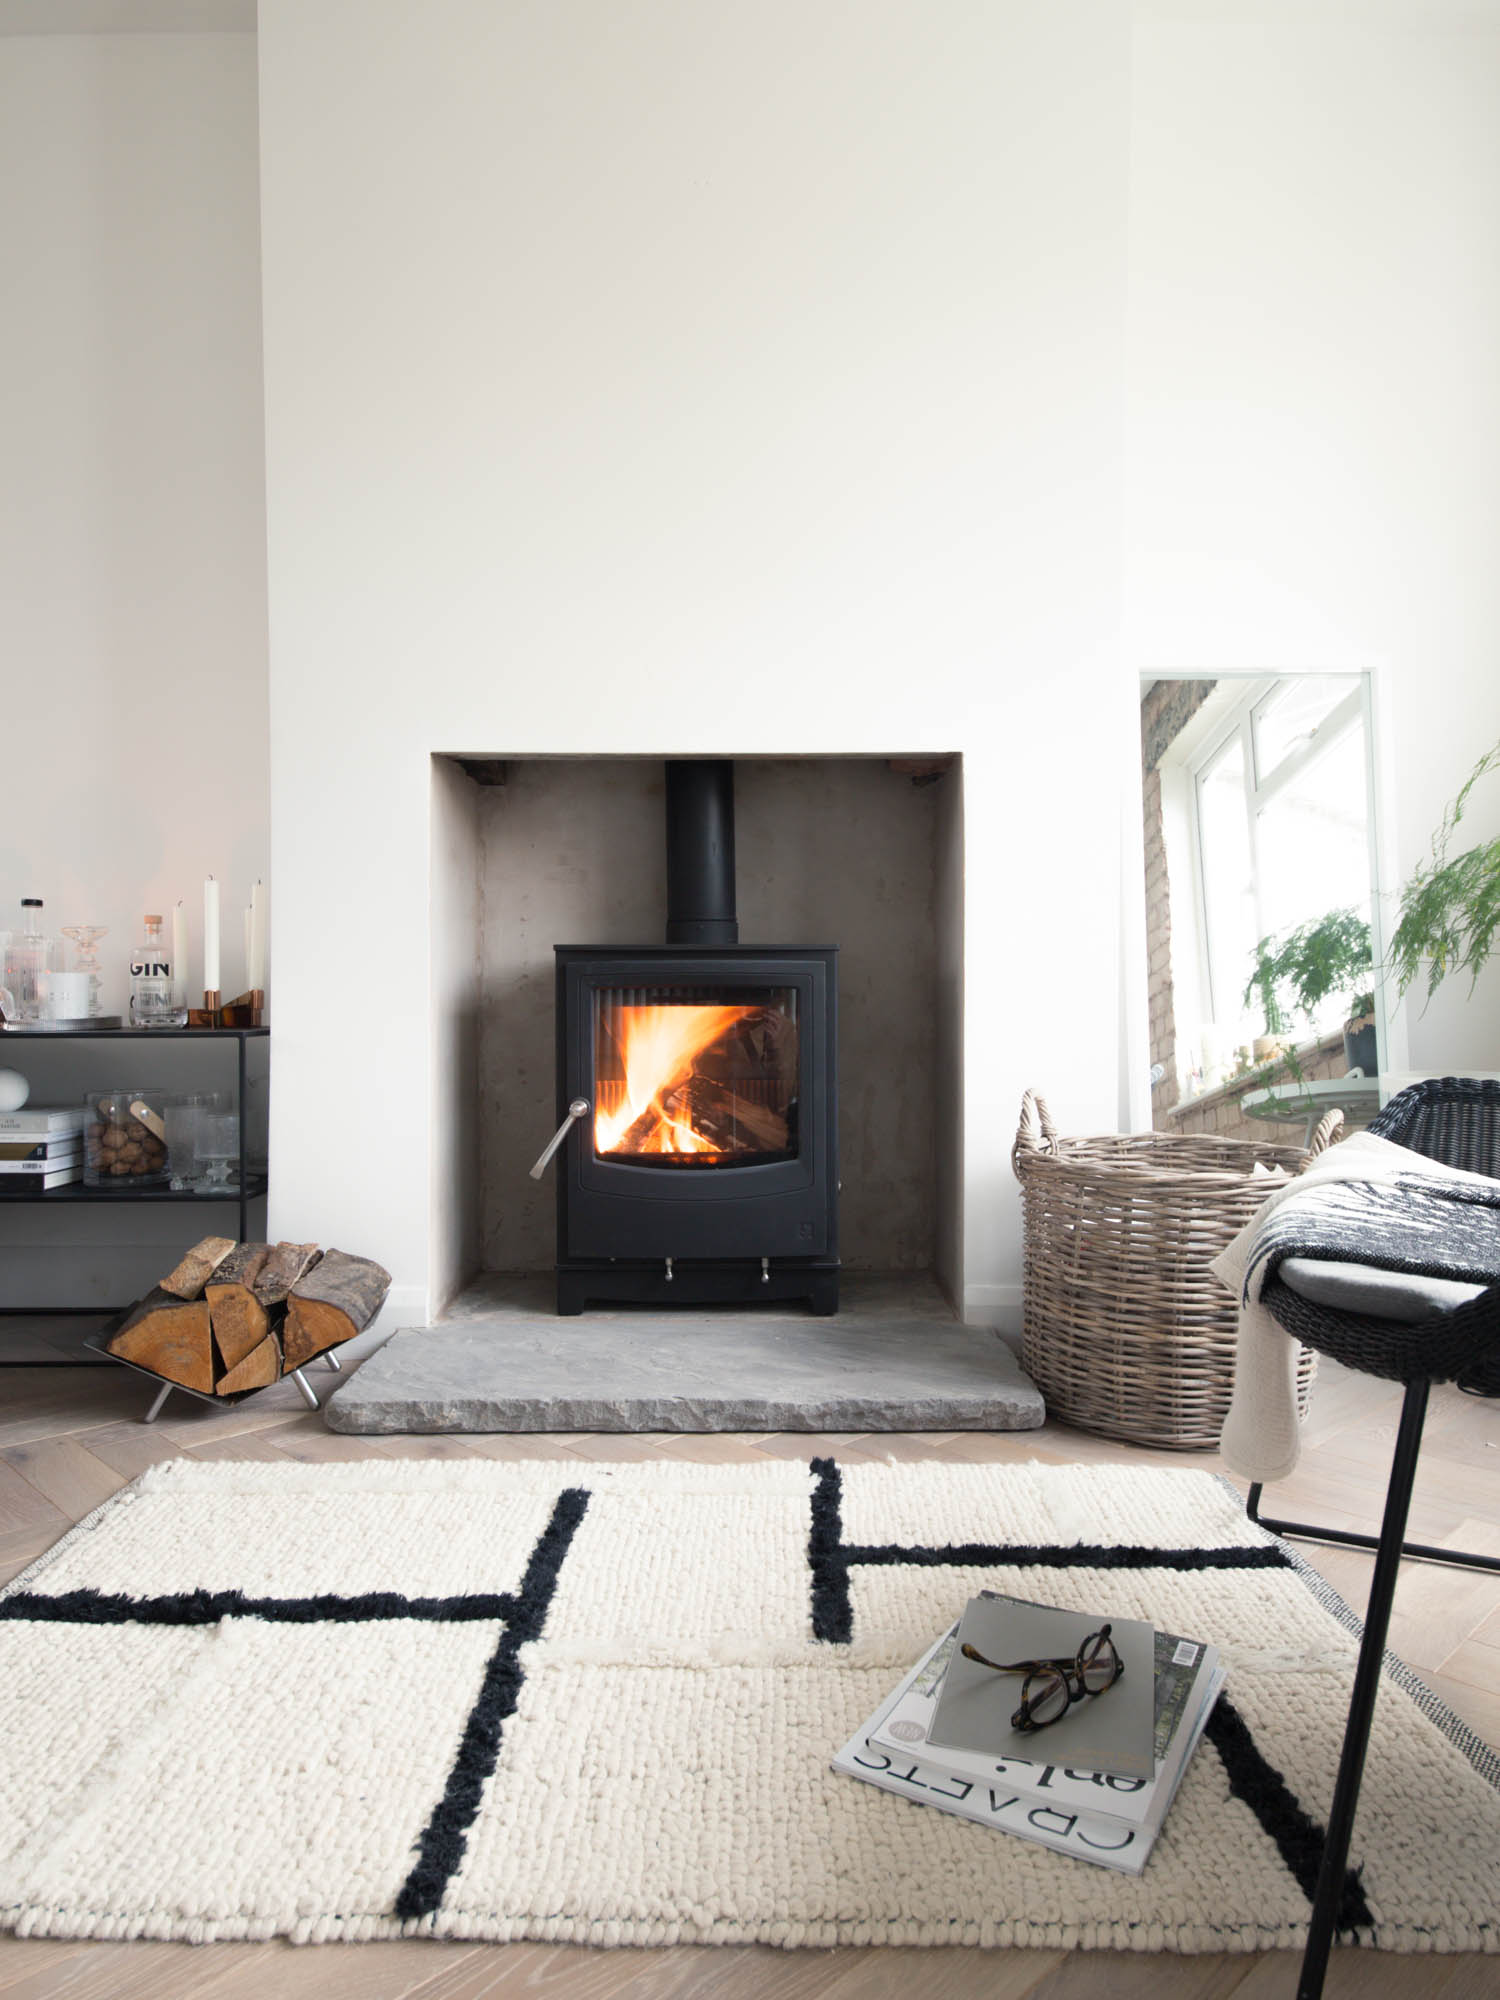 Installing A Wood Burning Stove A Step By Step Guide Design Hunter